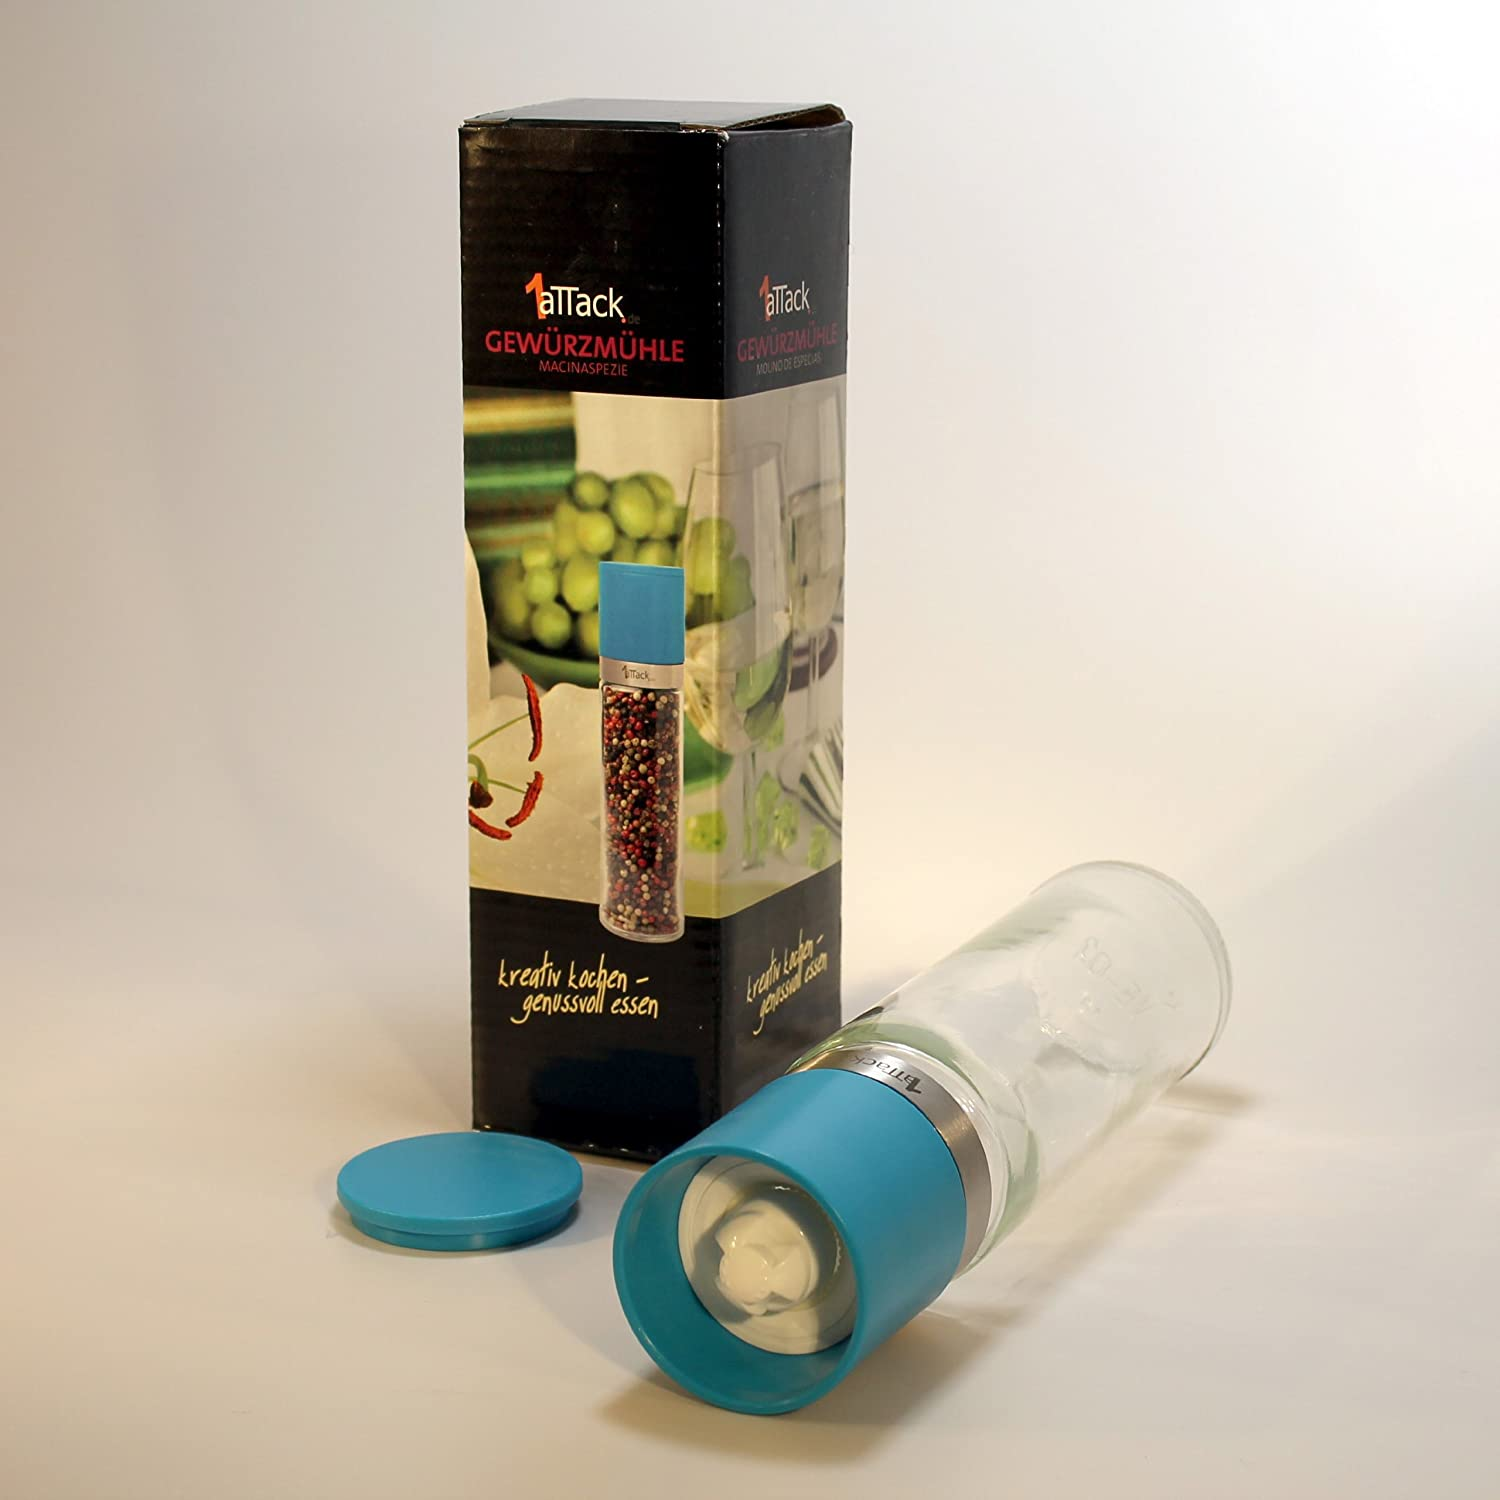 230ml turquoise blue blue without spice 1aTTack.de Pepper and salt mill with adjustable ceramic grinder chili